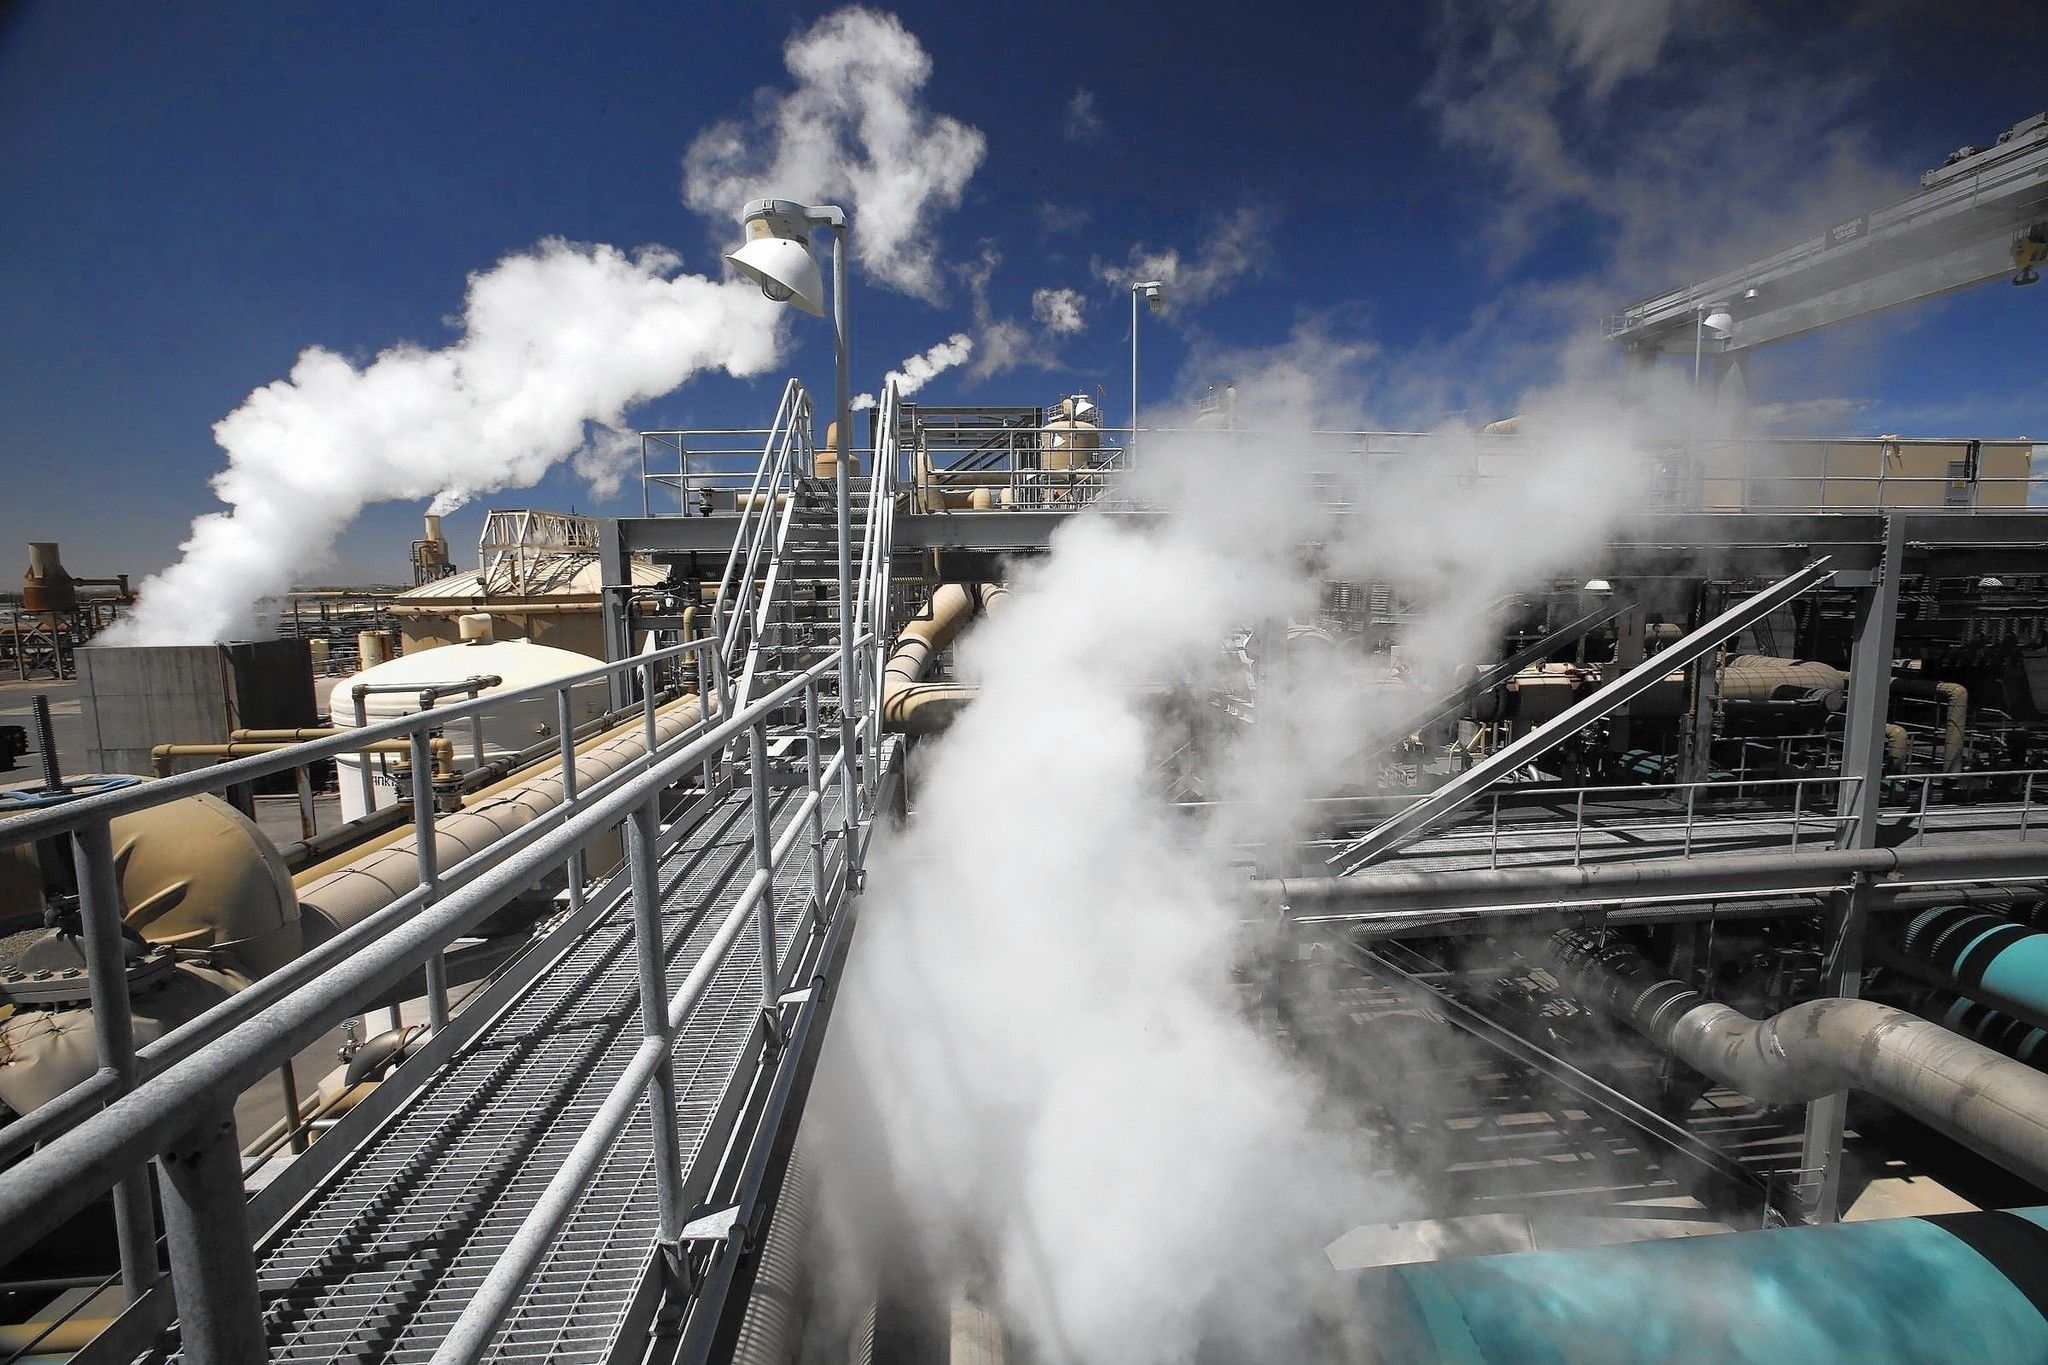 Geothermal Power Industry Lost Steam But May Be Poised For Comeback Geothermal Geothermal Energy Renewable Energy